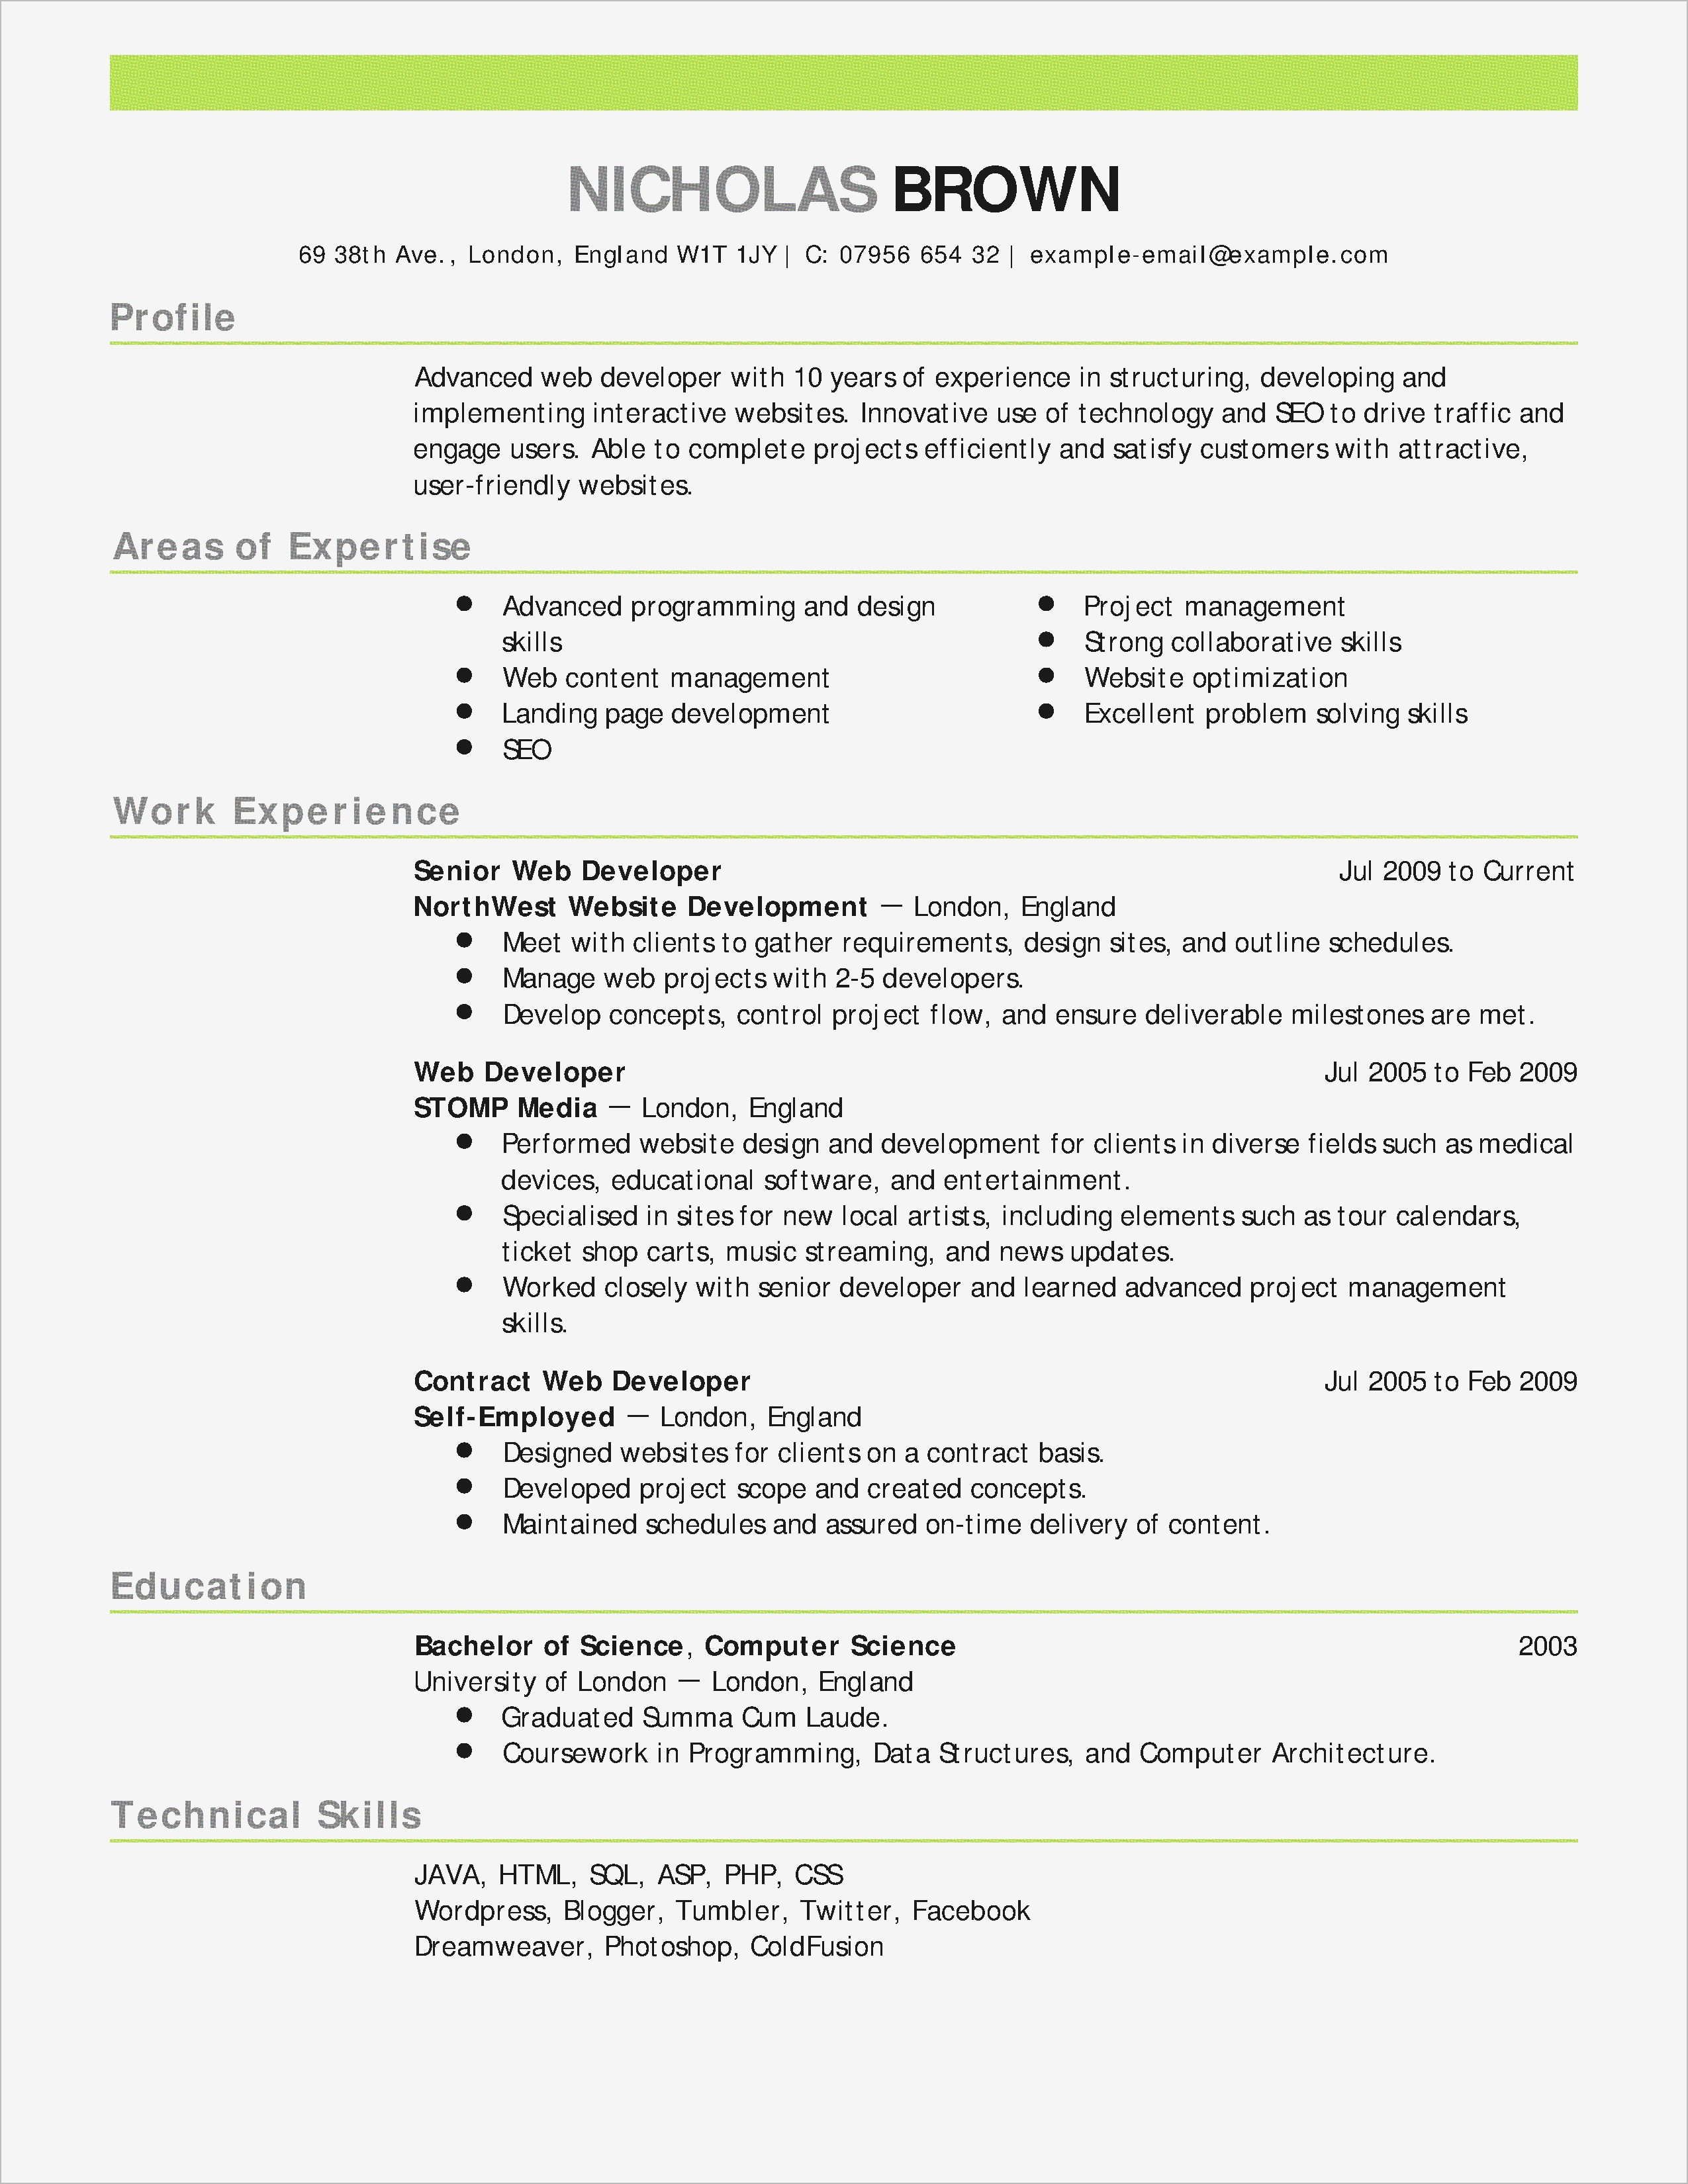 Receipt Letter Template - Example A Resume Cover Letter Ideas